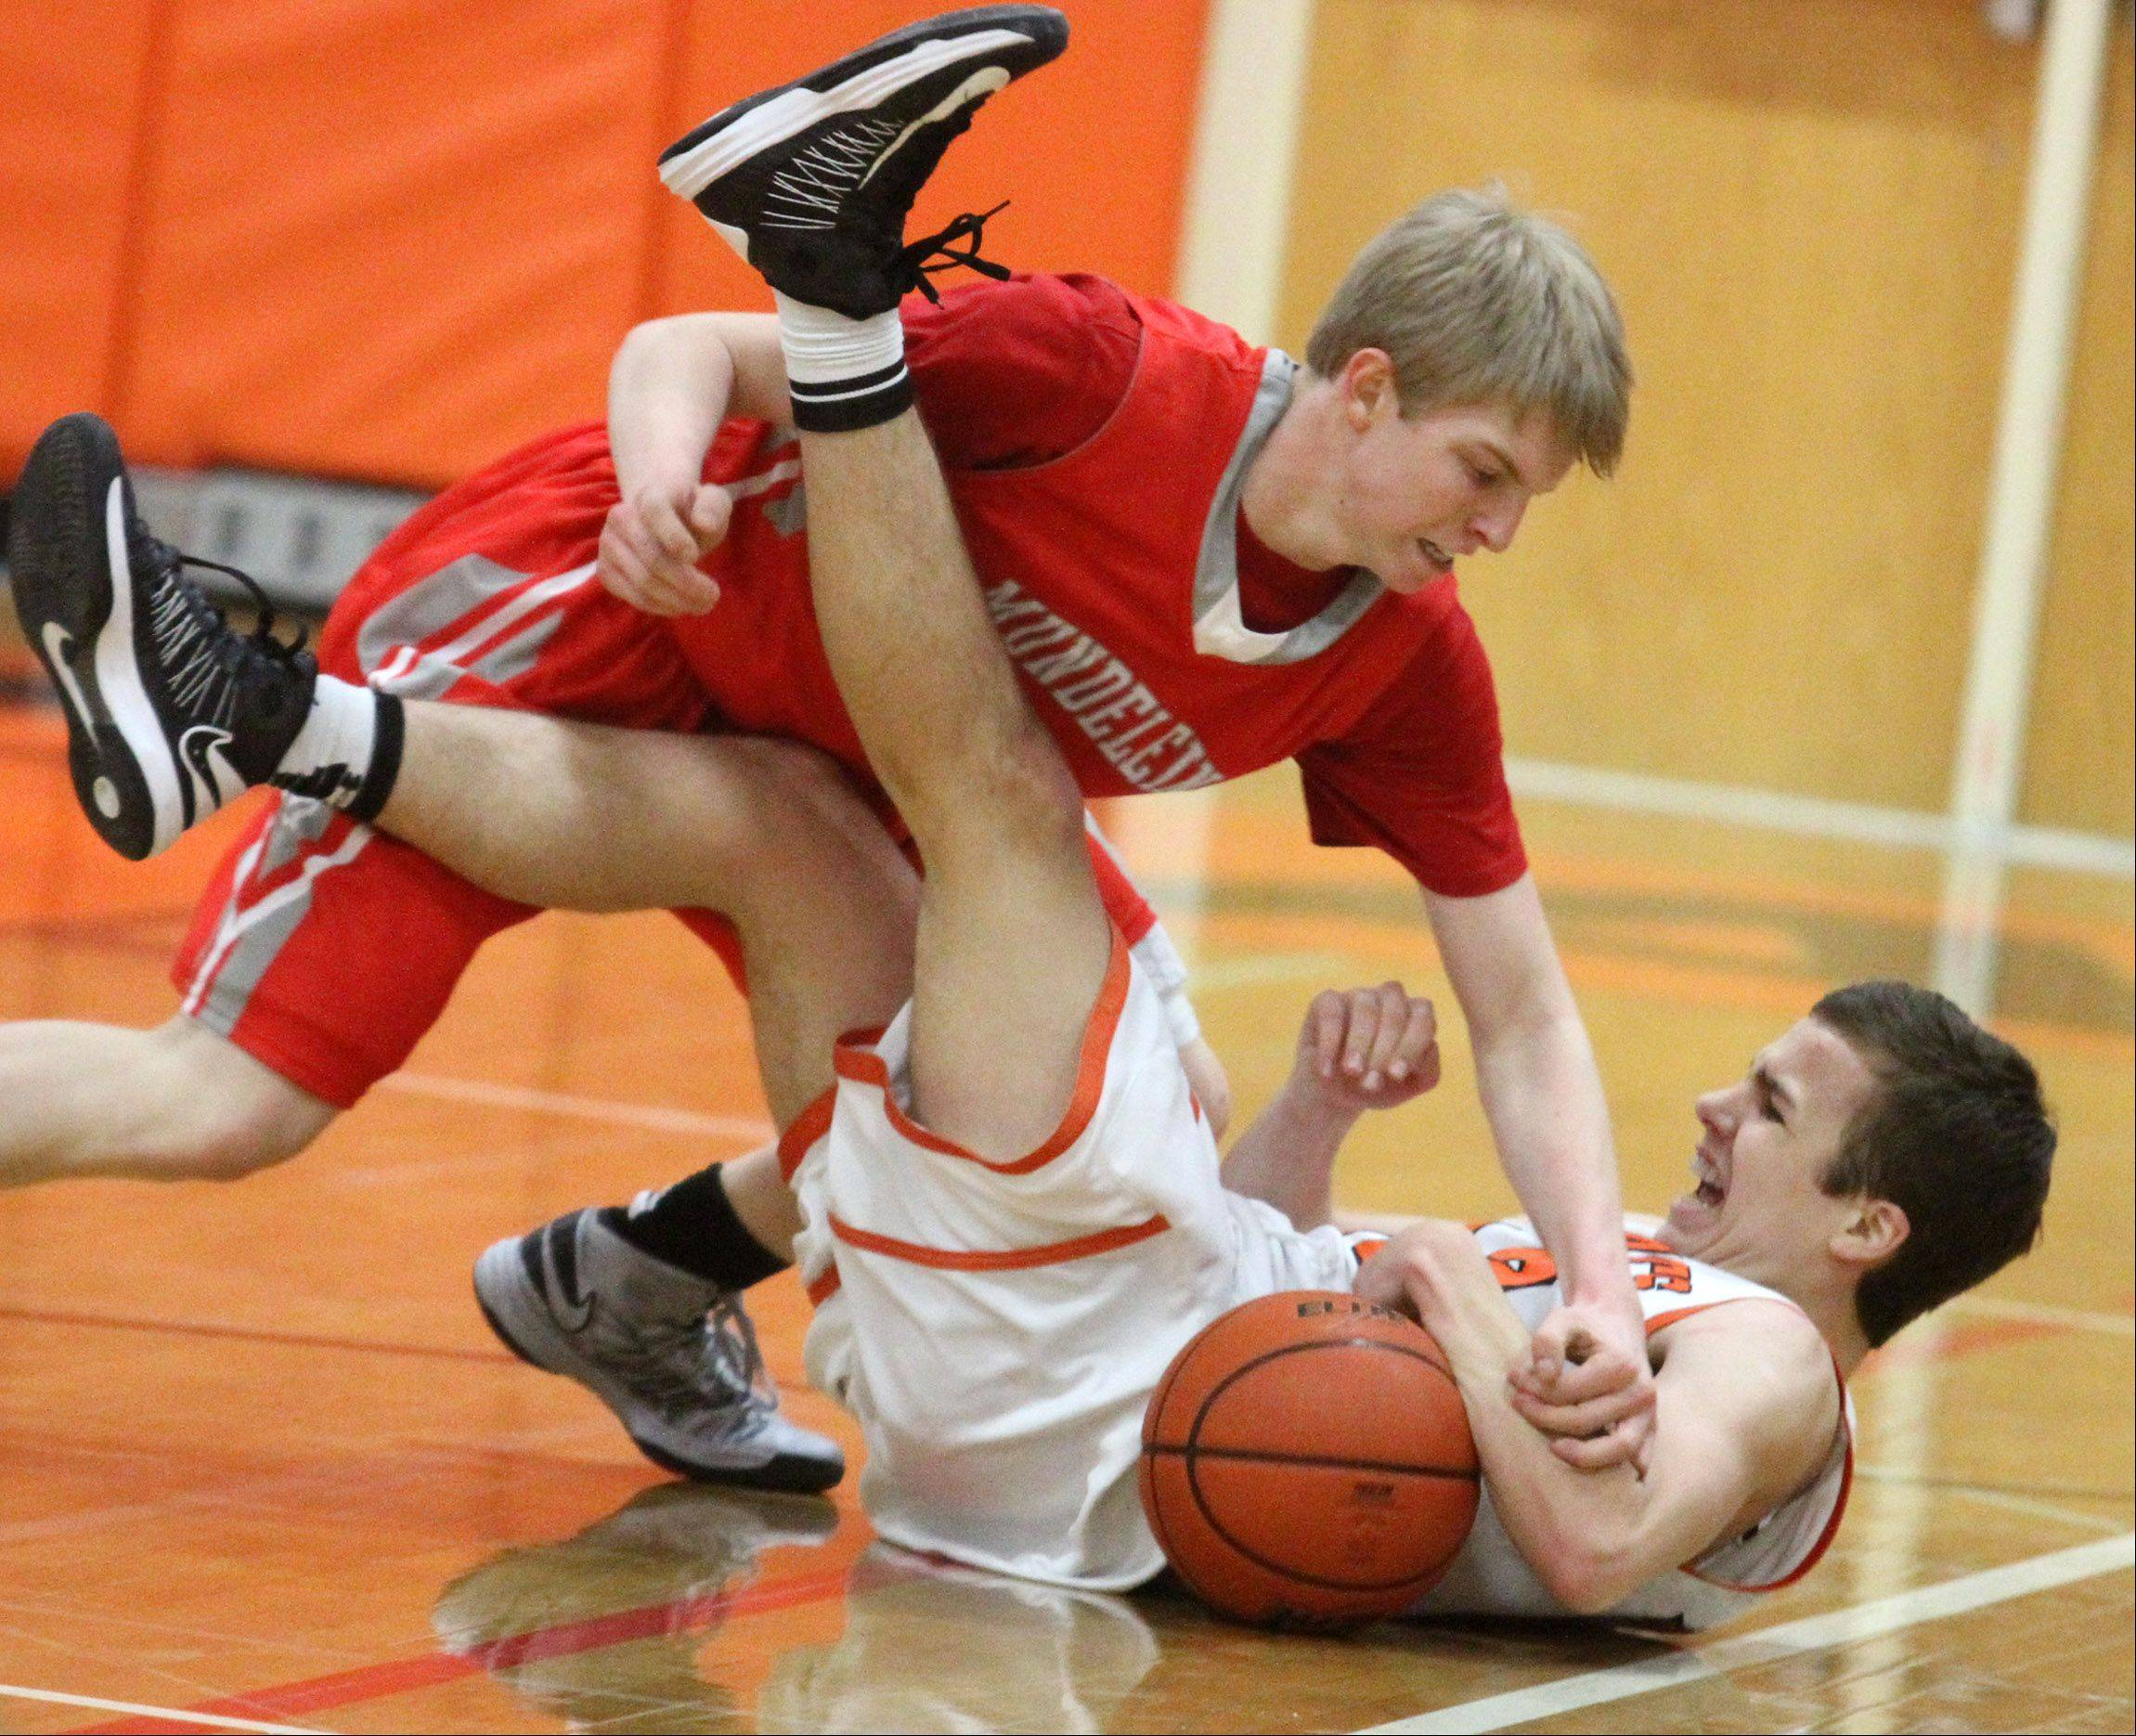 Mundelein�s Dylan Delaquila tries to take the ball from Libertyville�s Nick Carlucci after the two collided during Friday�s game in Libertyville.